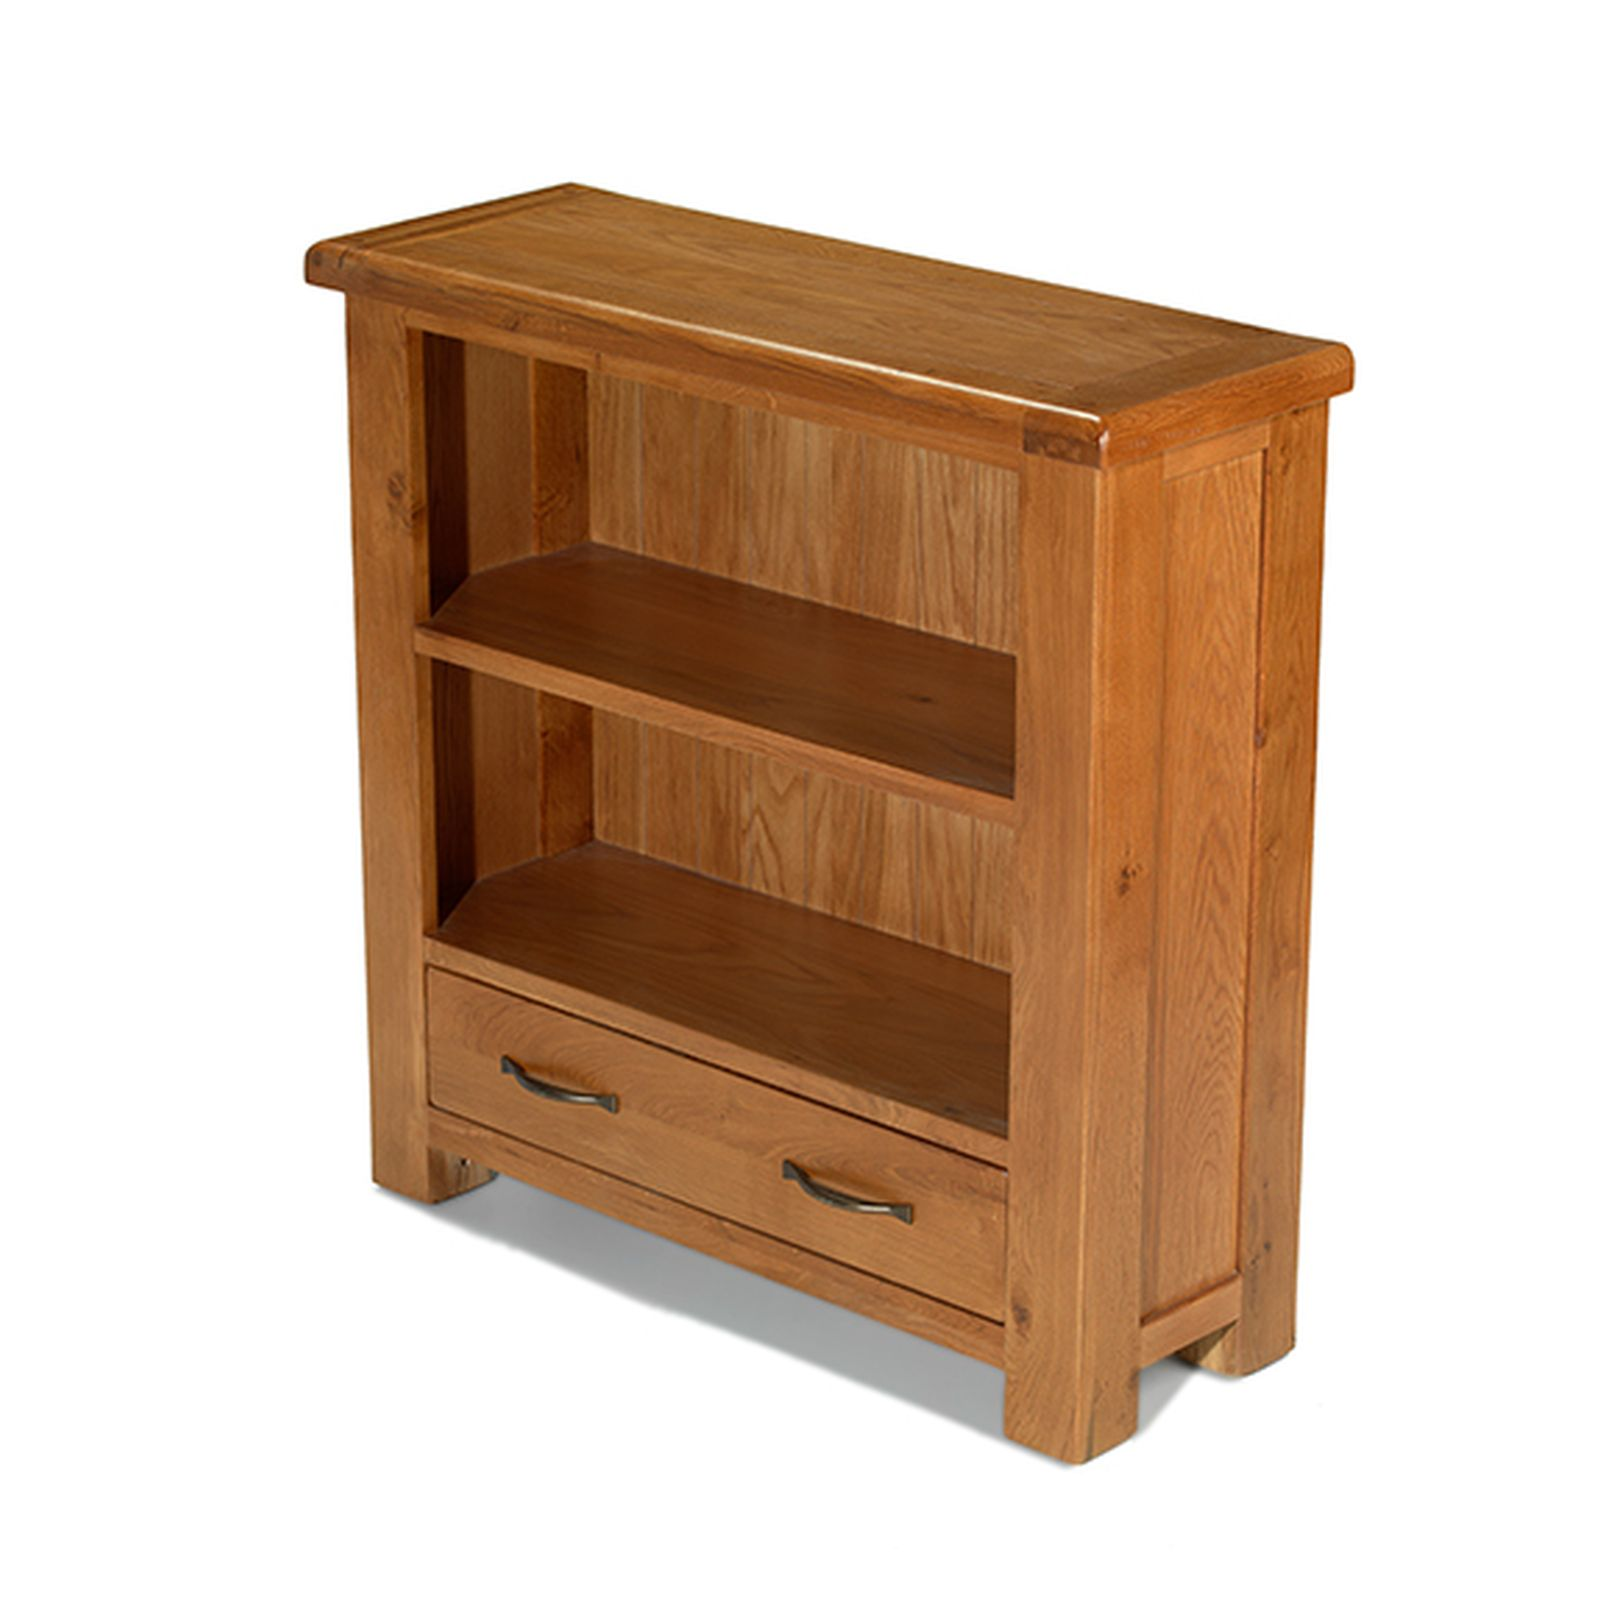 Melrose solid oak furniture small low bookcase with drawer for Solid oak furniture